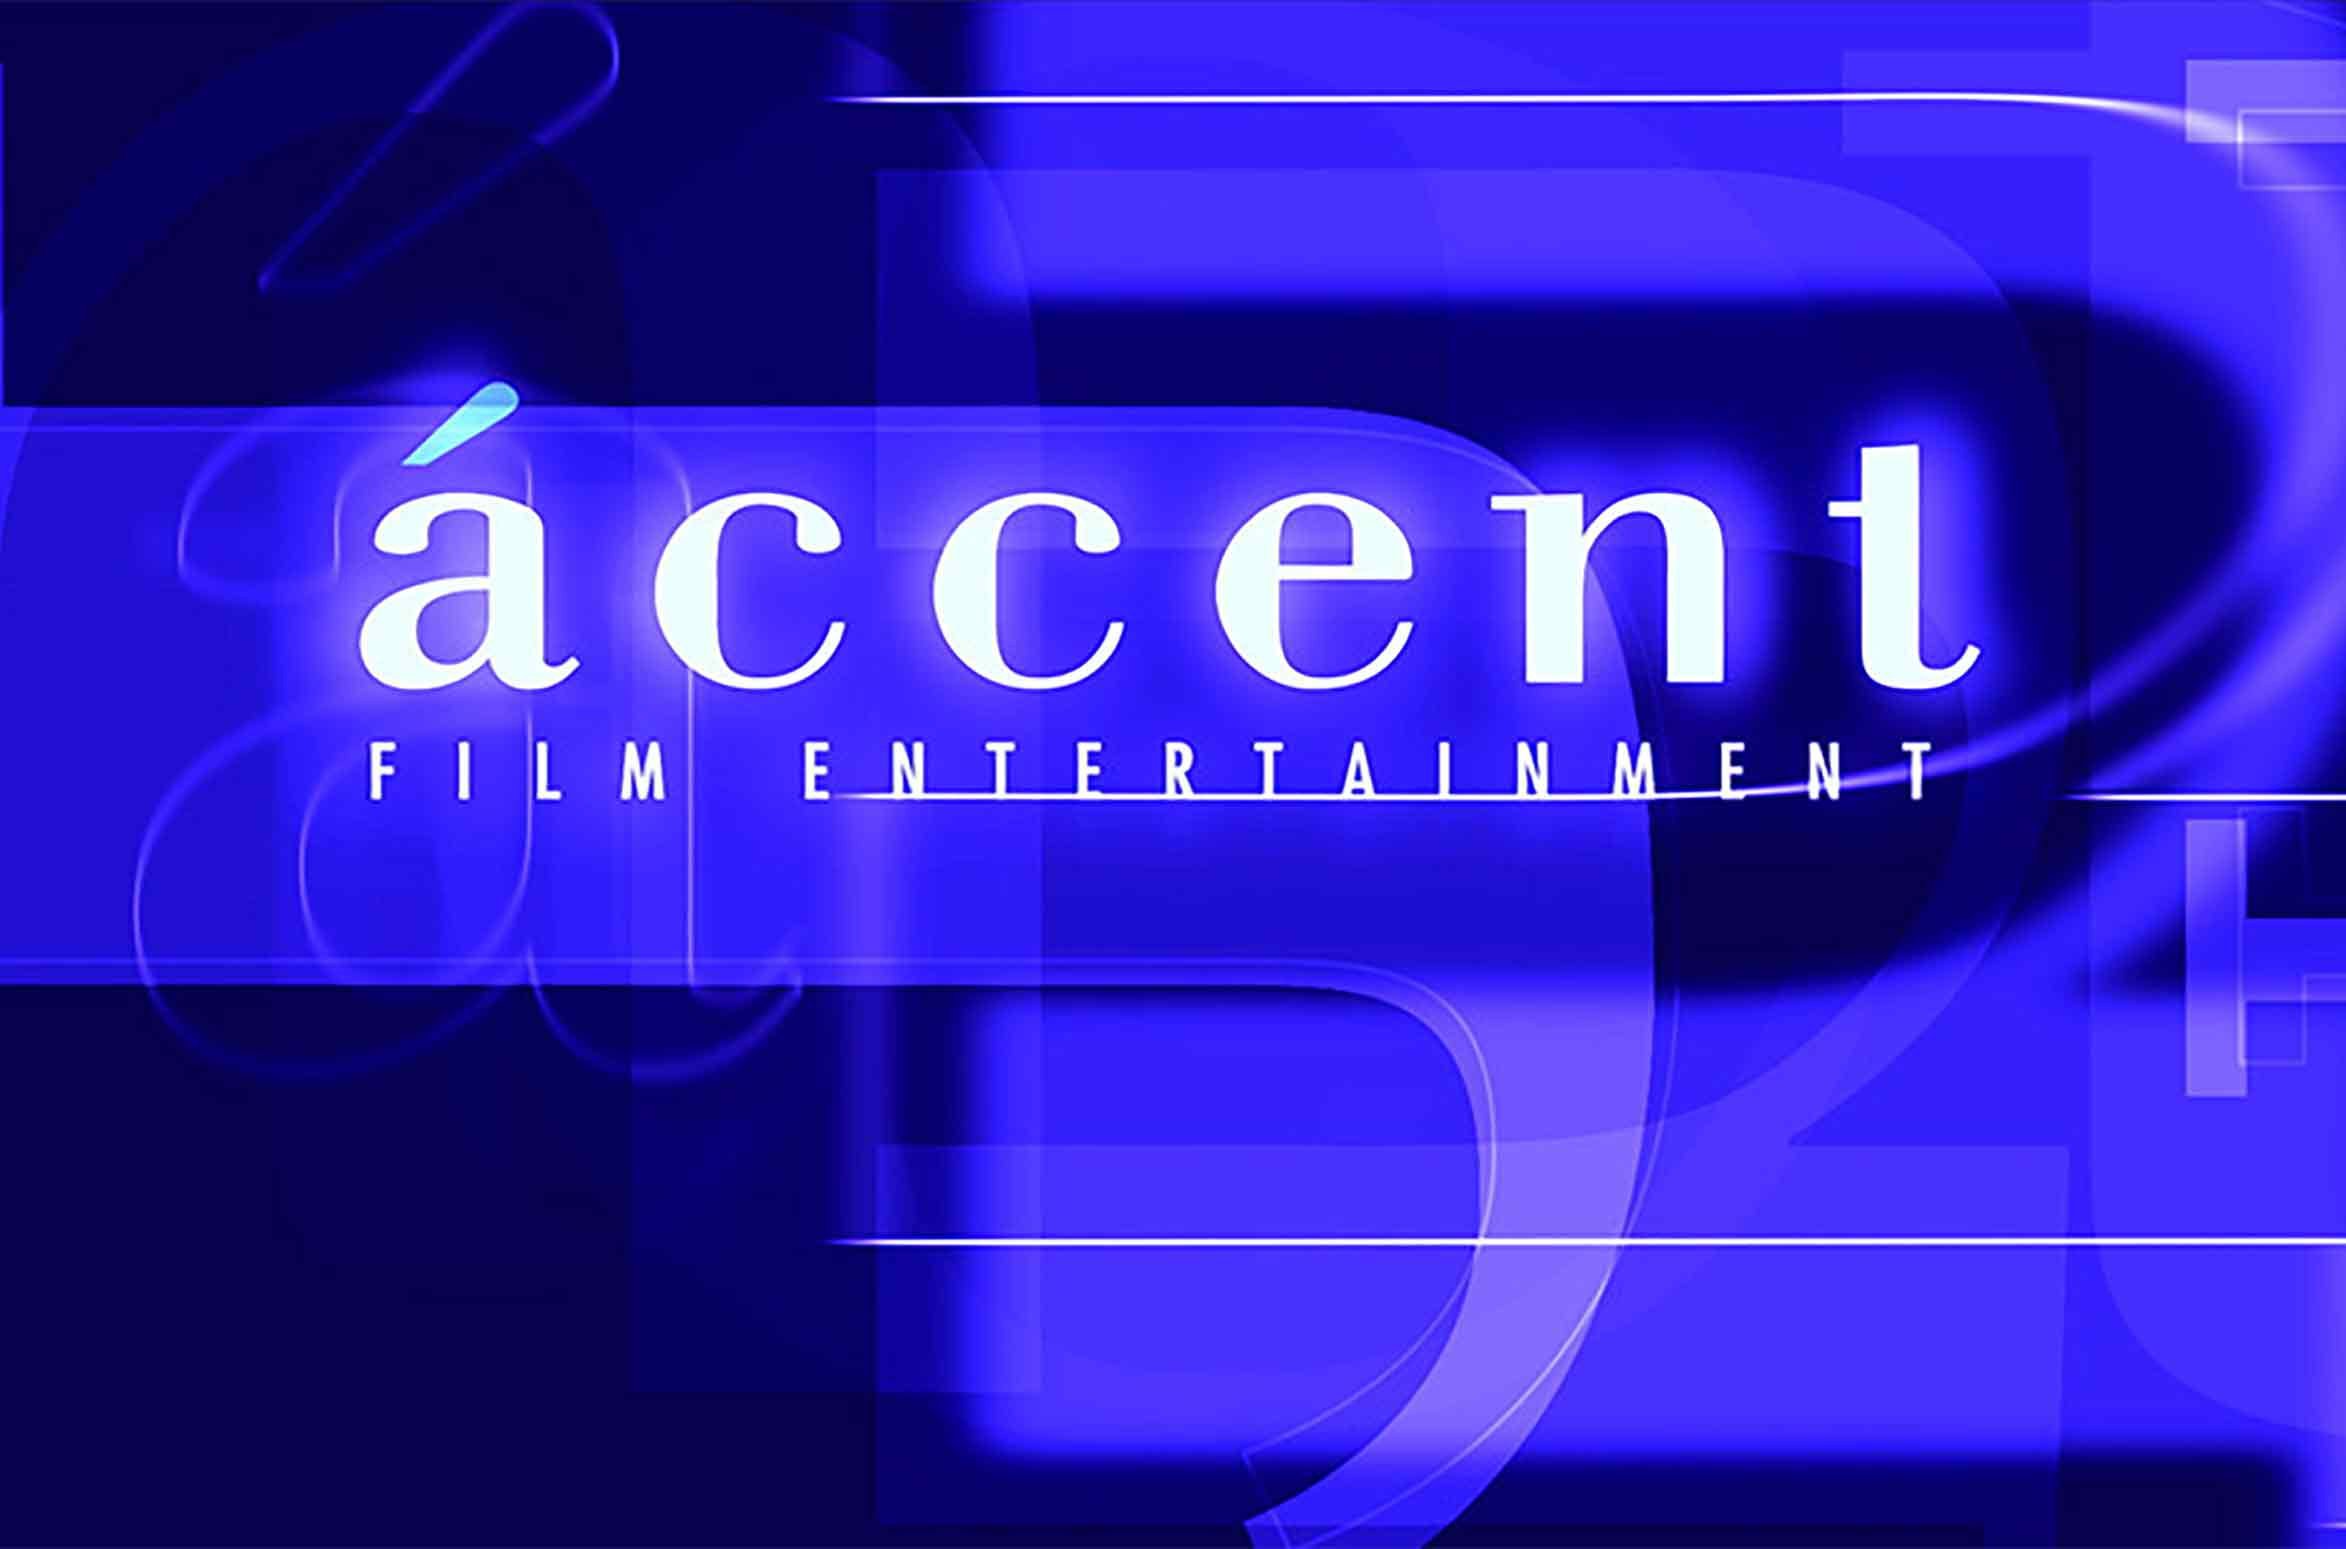 ACCENT FILM ENTERTAINMENT LOGO - IML Digital Media